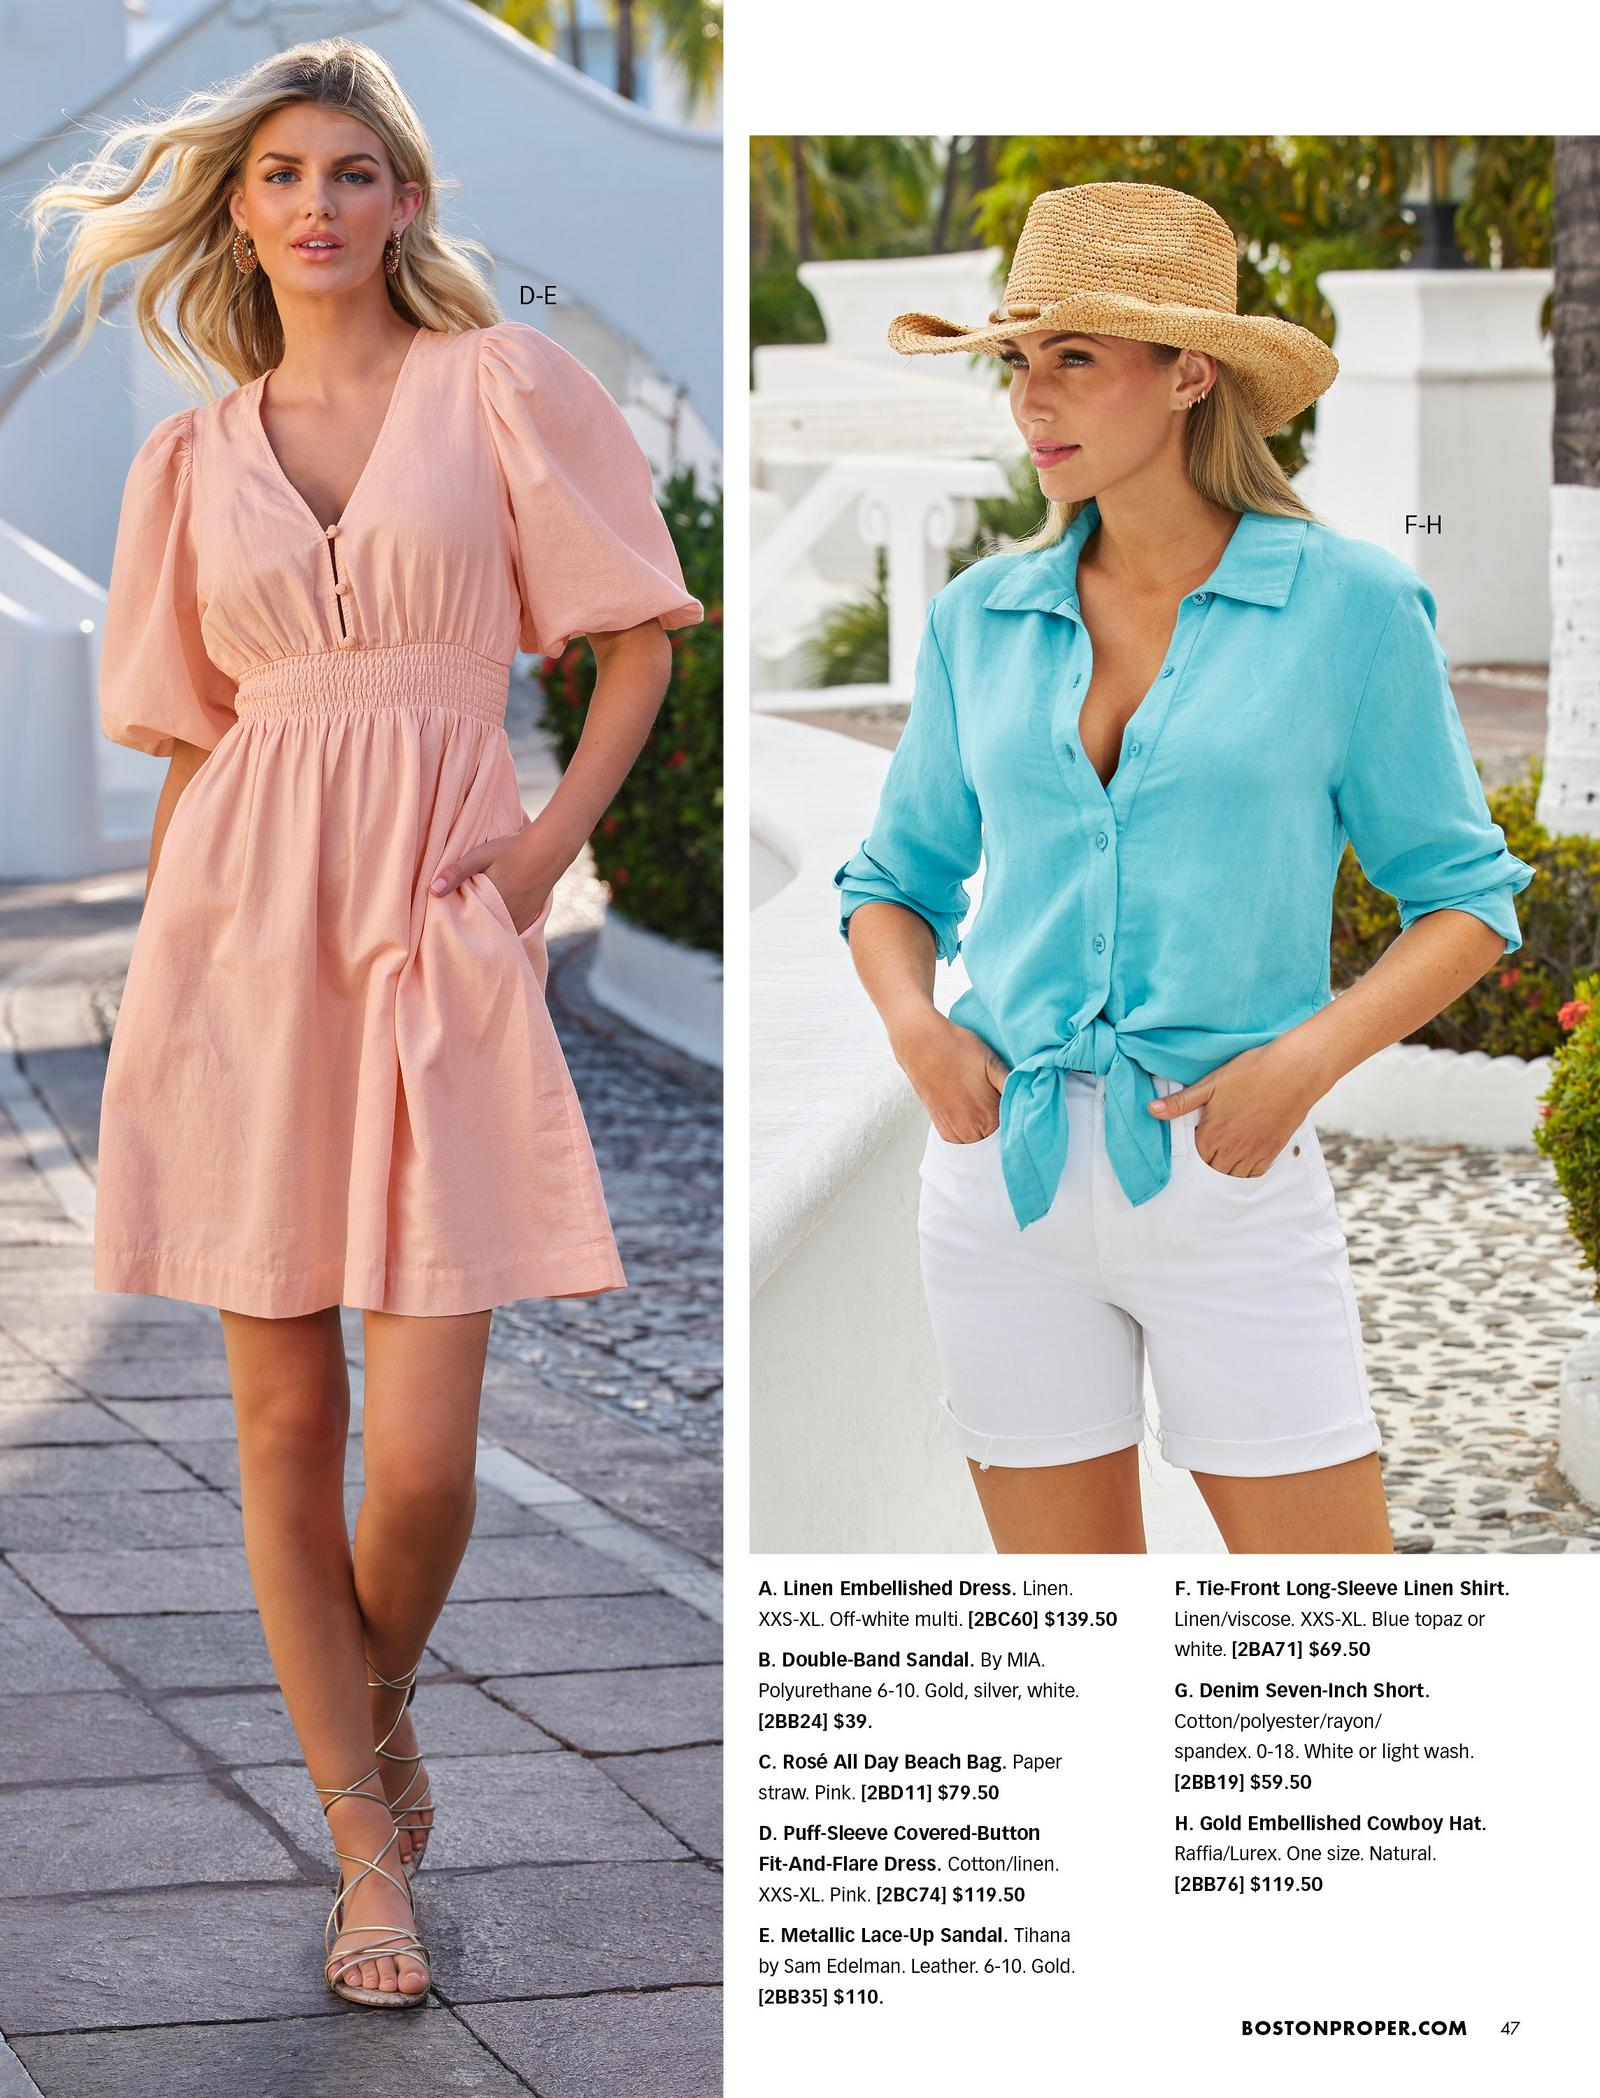 left model wearing a light pink puff-sleeve covered-button fit and flare dress and gold lace up sandals. right model wearing a blue tie-print long-sleeve linen shirt, gold embellished cowboy hat, and white jean shorts.